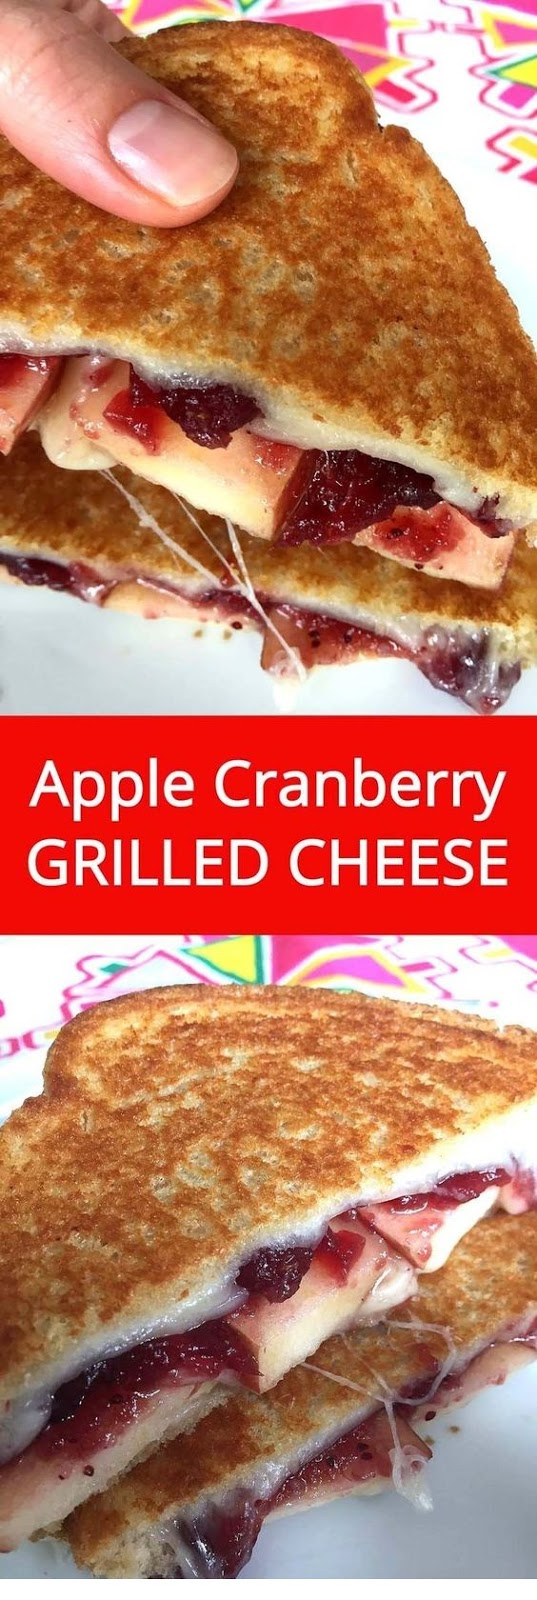 Apple Cranberry Grilled Cheese Sandwich Recipe